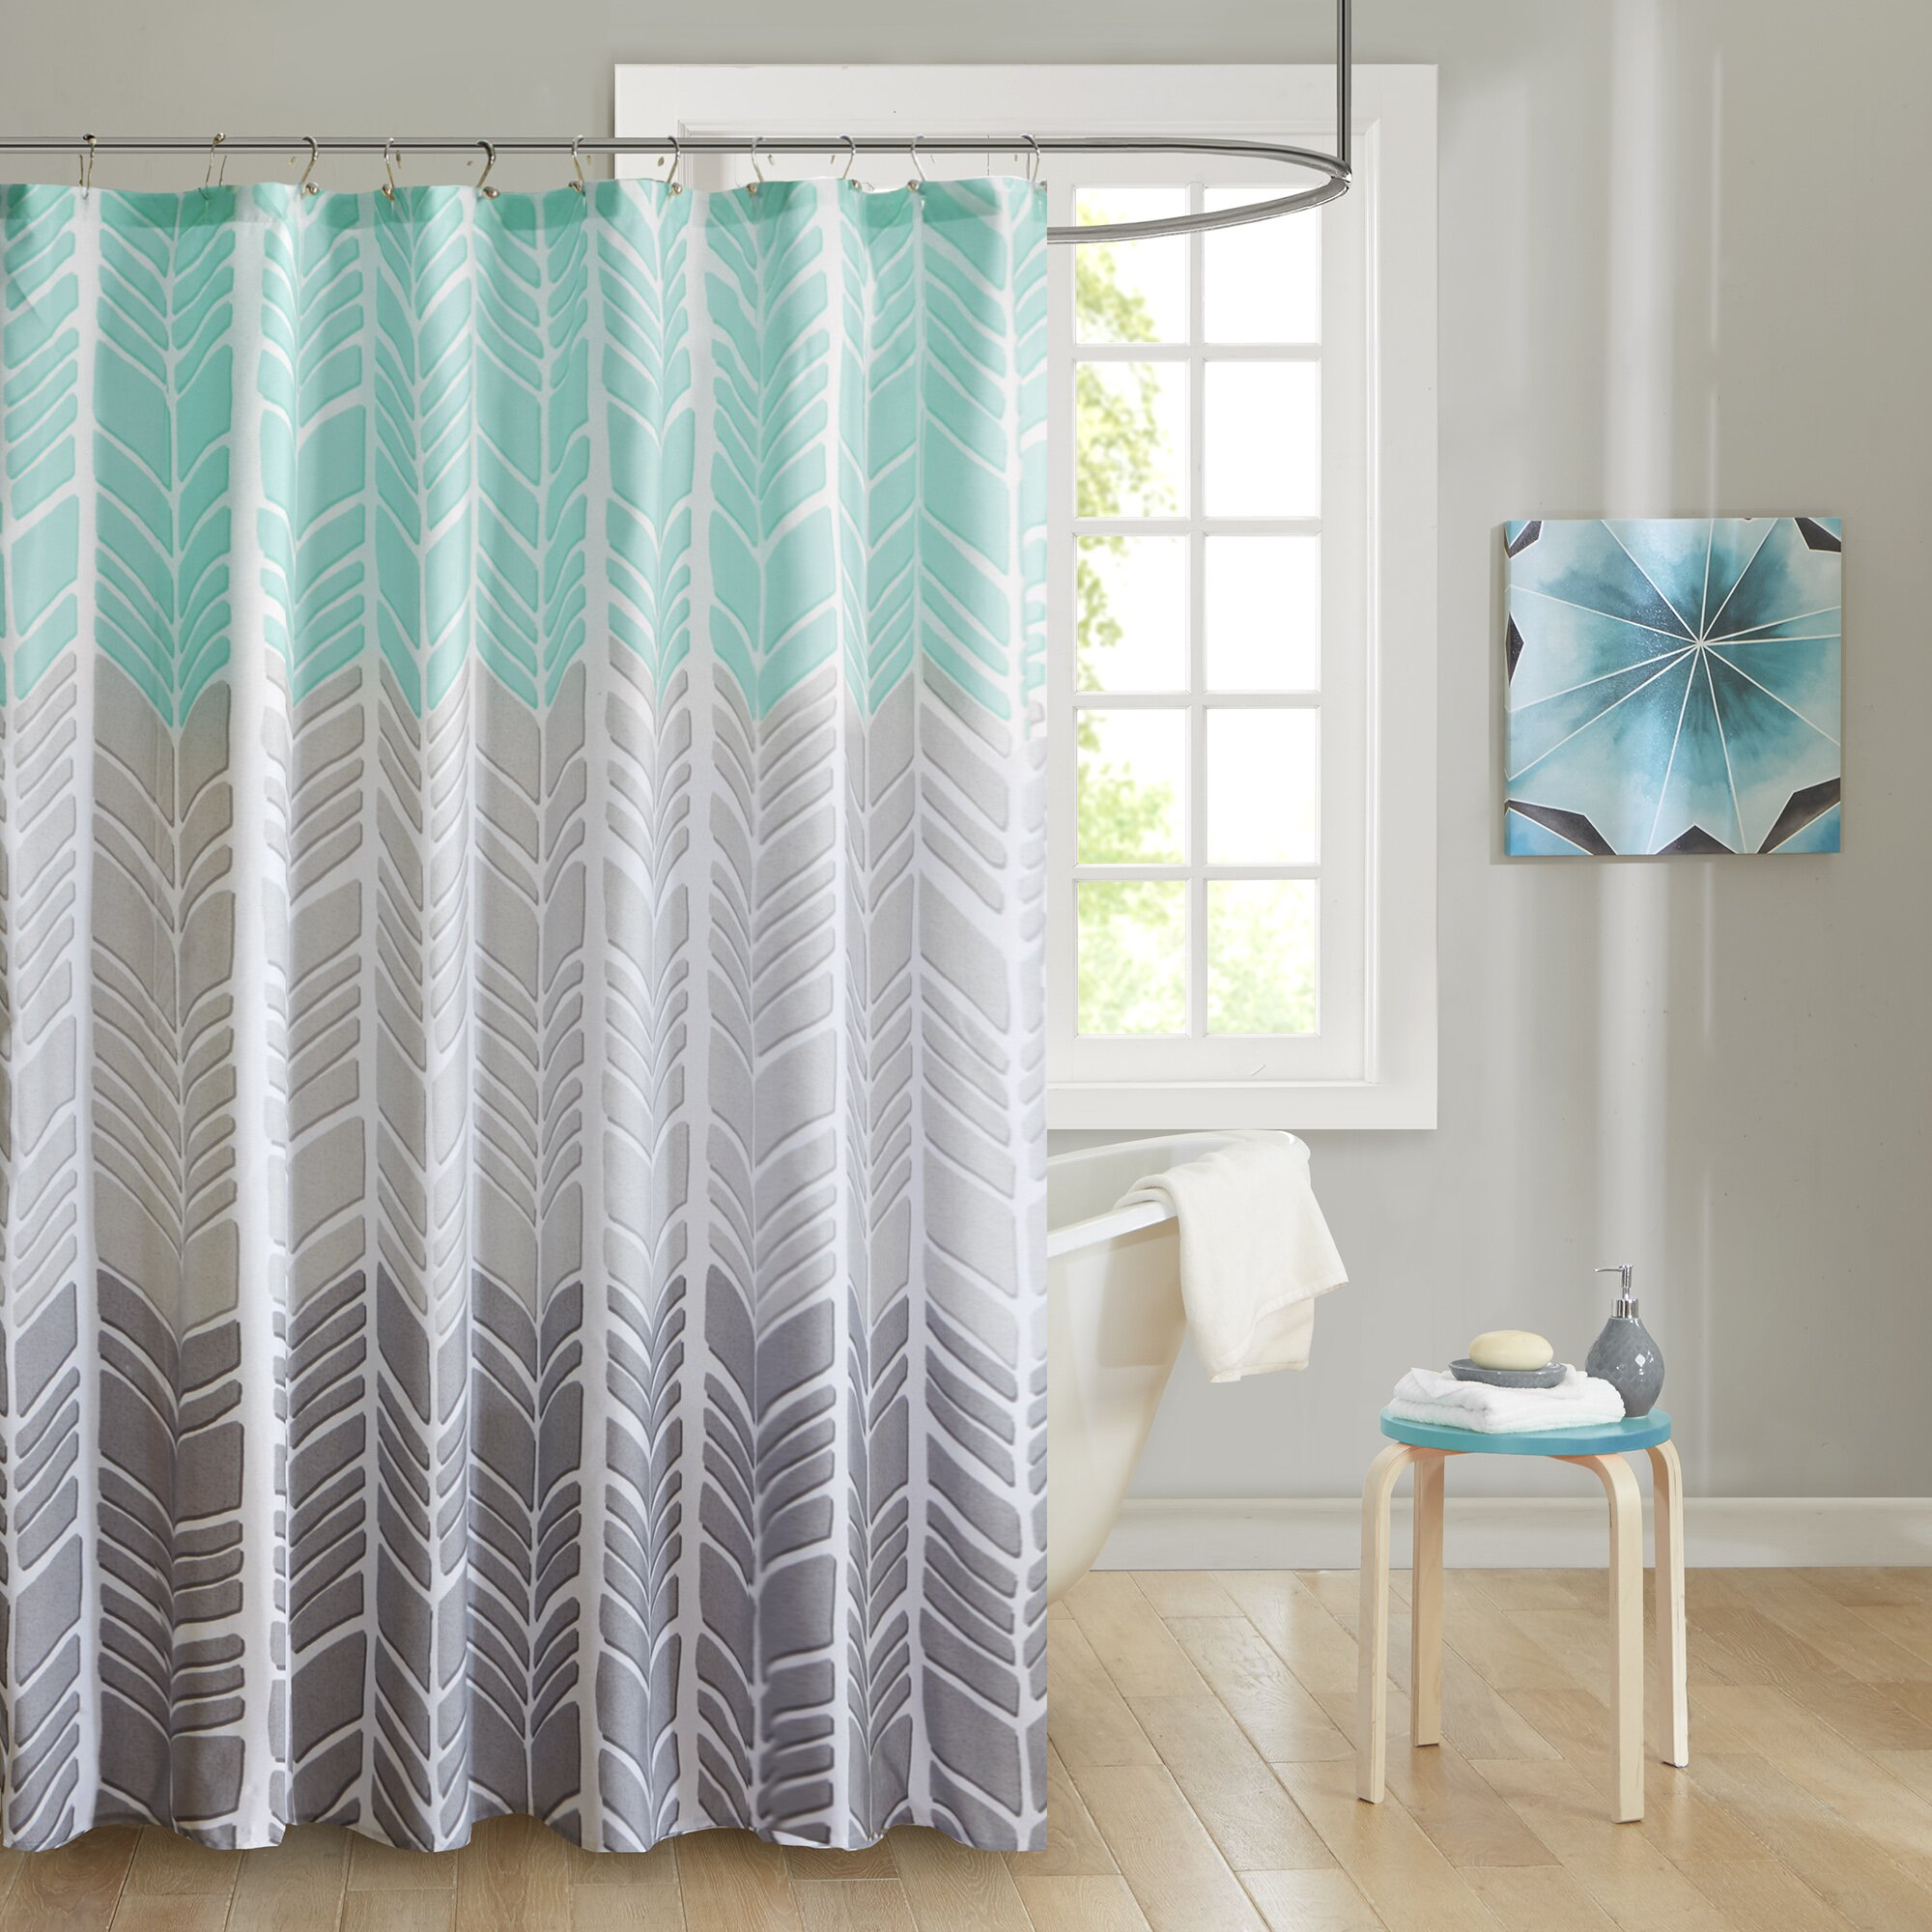 Shower Curtains Youll Love Wayfair - Mint green shower curtain